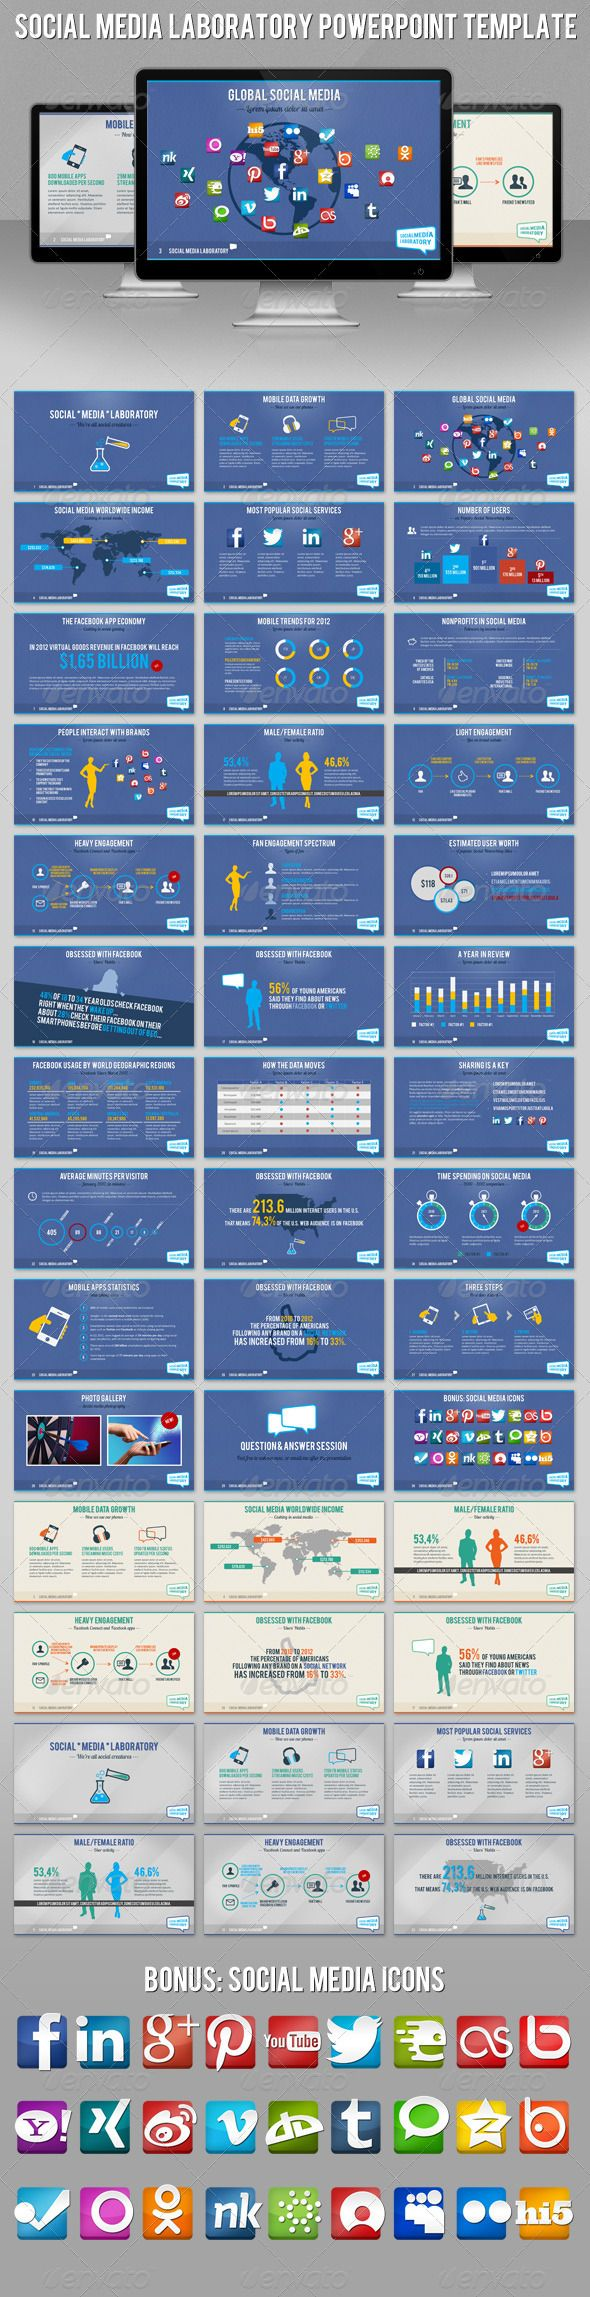 Social Media Laboratory HD PowerPoint Template - Powerpoint Templates Presentation Templates